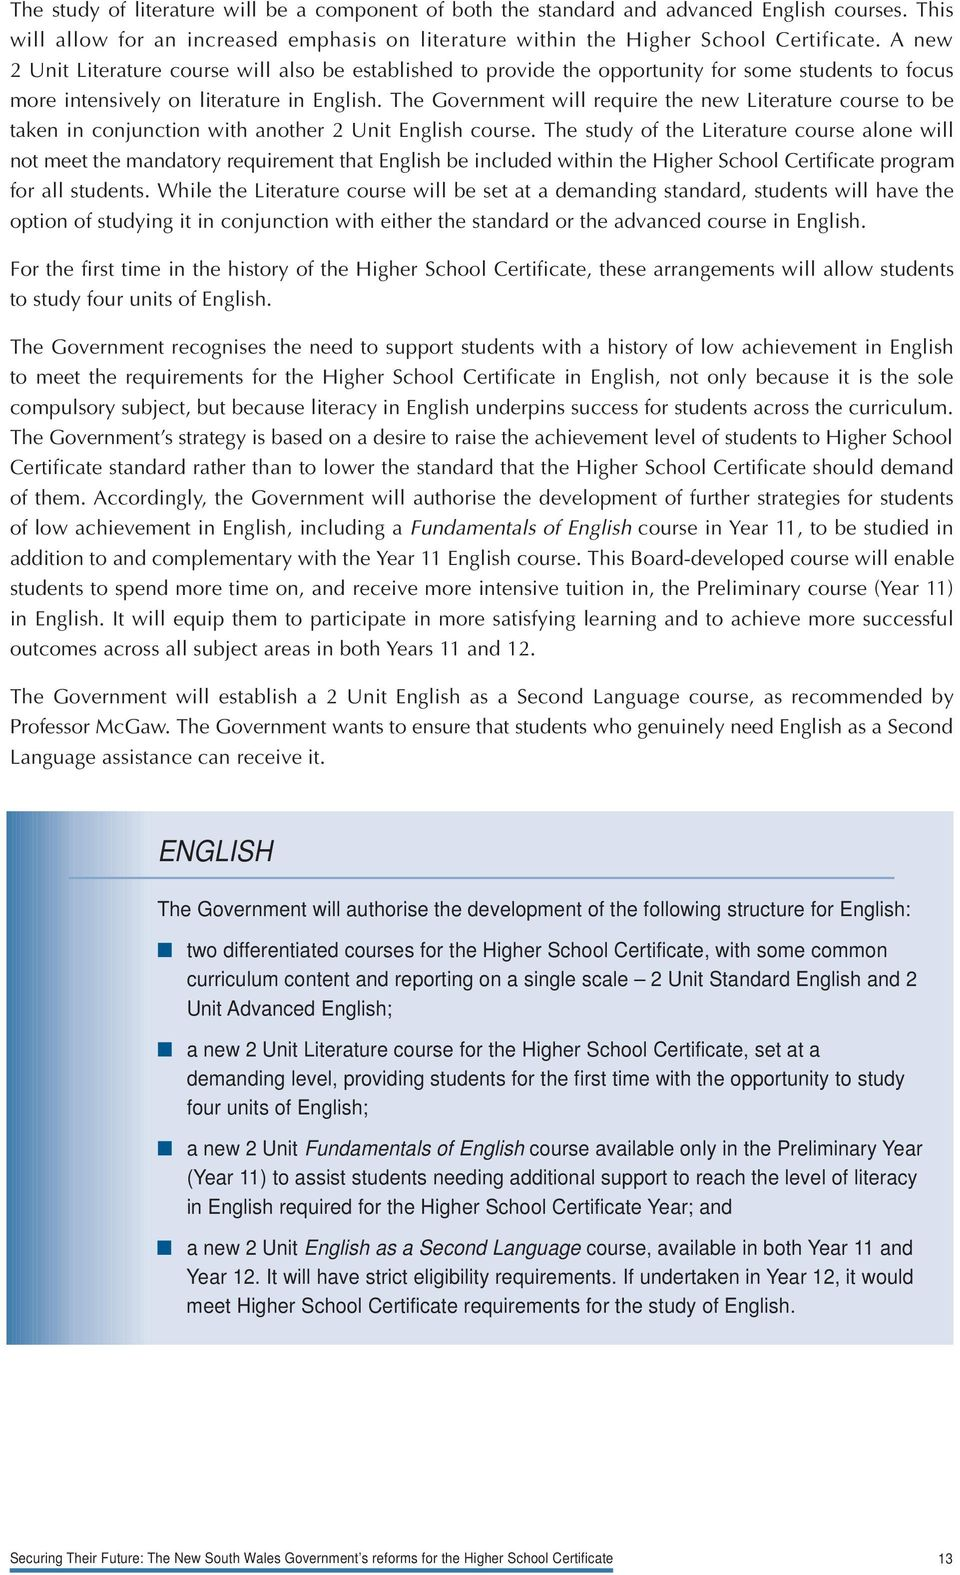 The Government will require the new Literature course to be taken in conjunction with another 2 Unit English course.